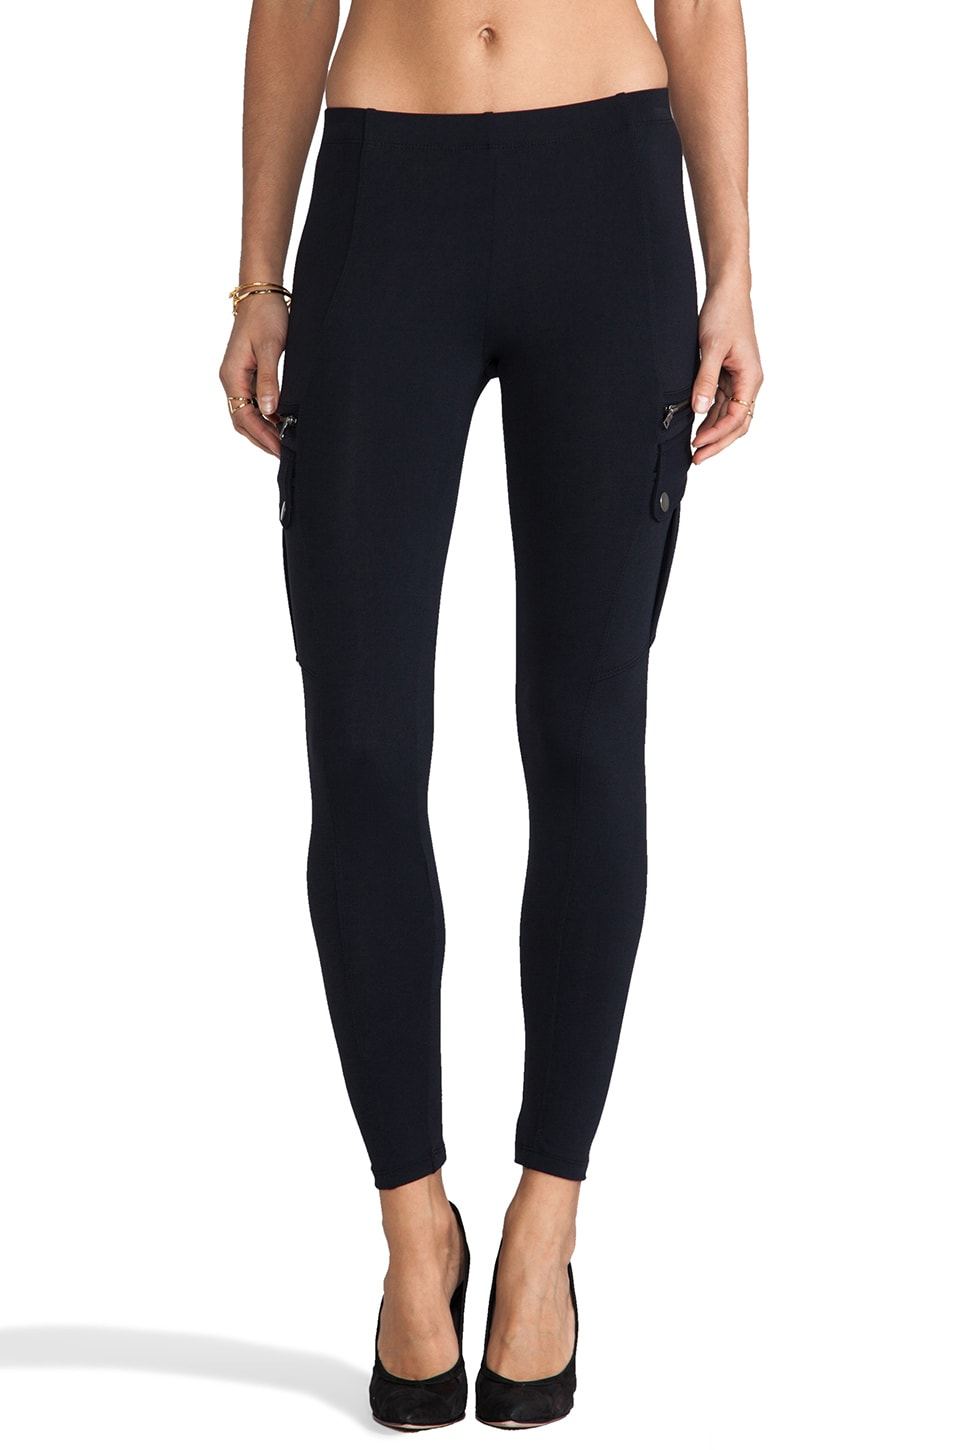 David Lerner Cargo Legging in Black